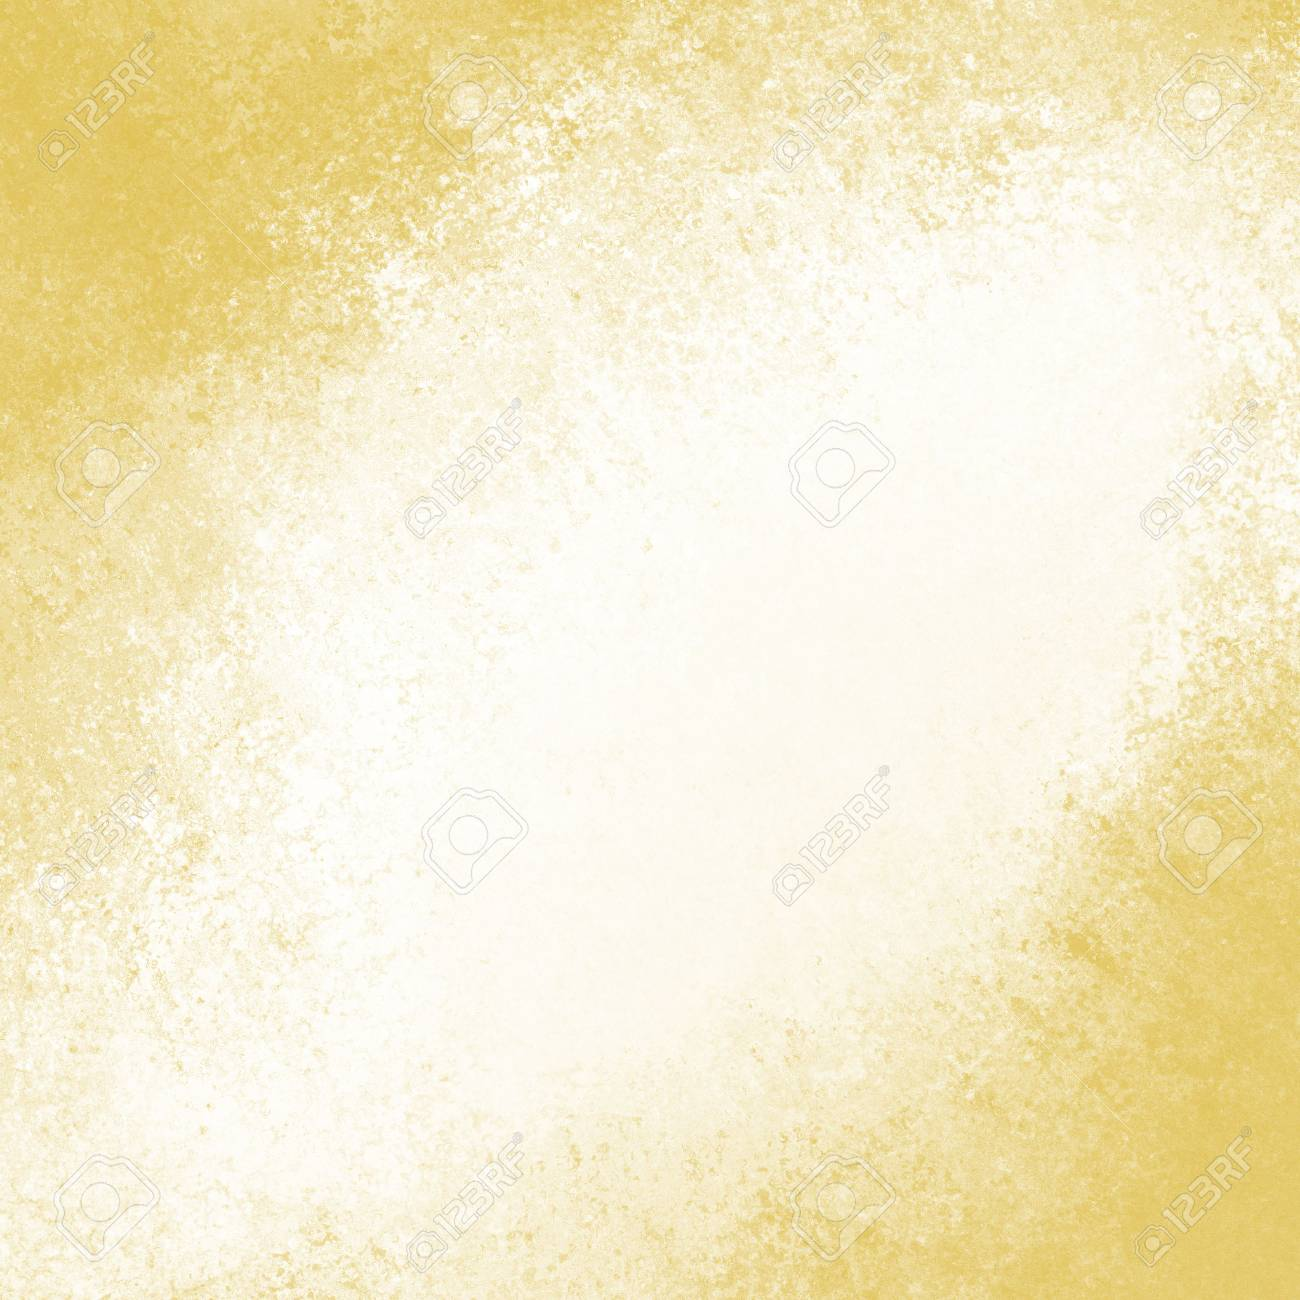 old paper texture. vintage white background with gold grunge border. - 46532287